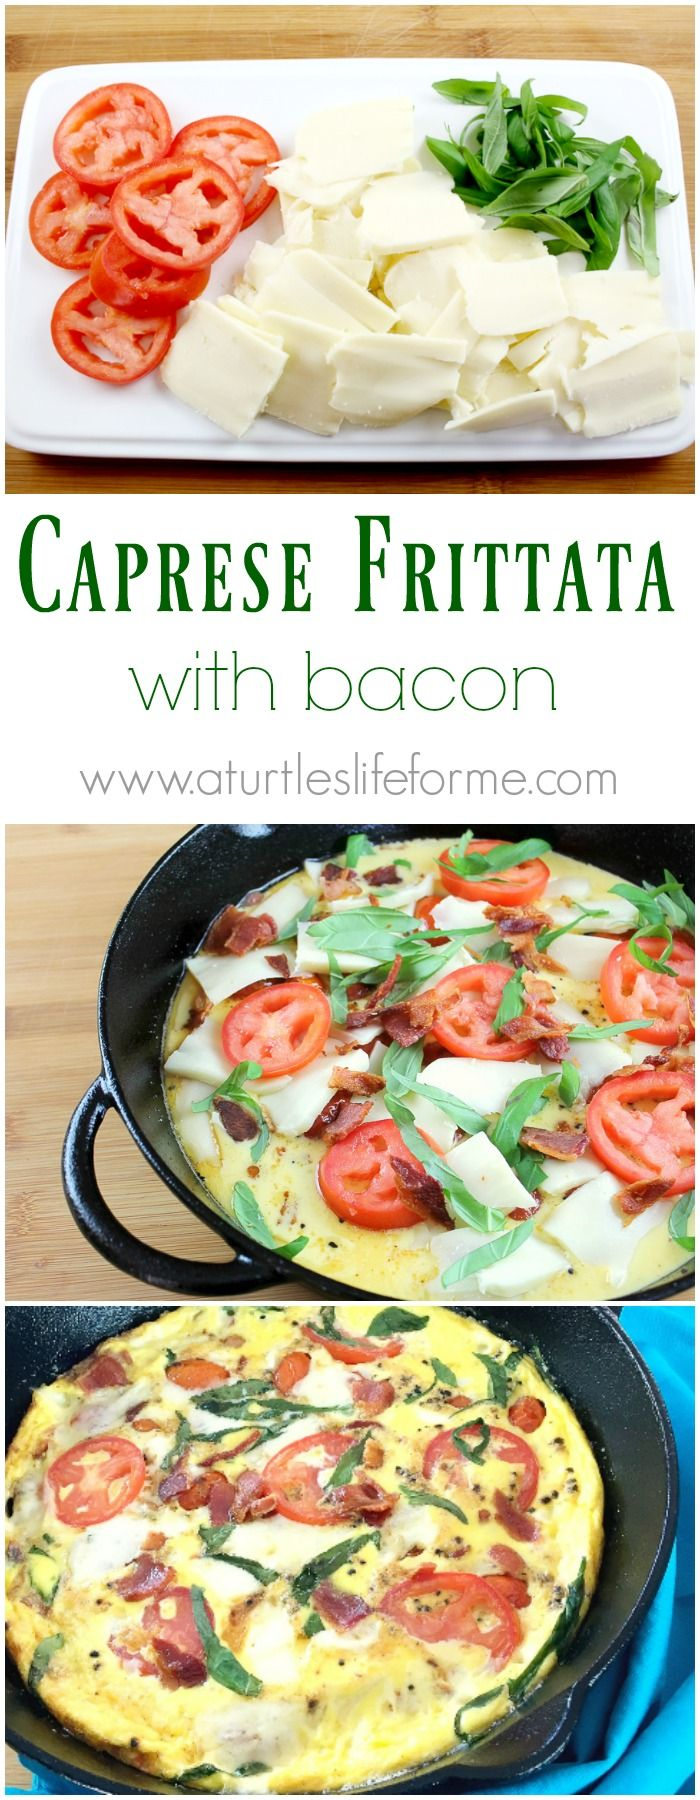 Caprese Frittata with bacon recipe for an easy breakfast or brunch!